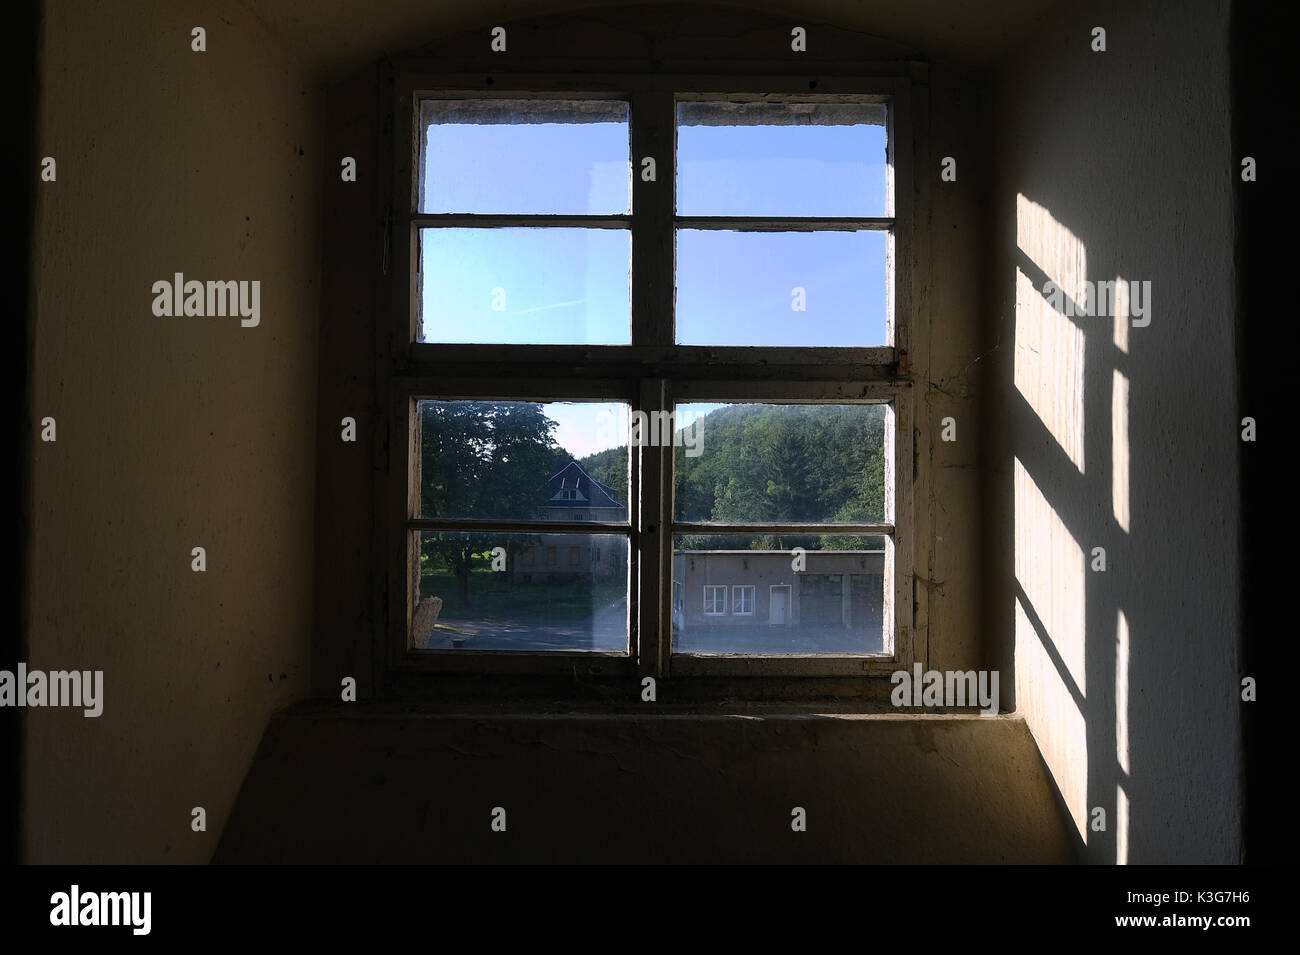 Frankenberg, Germany. 23rd Aug, 2071. FILE - Archival material shows the window of a factory room that served as chamber for prisoners in the former concentration camp Sachsenburg in Frankenberg, Germany, 23 August 2071. To the left the villa of the commander is visible. The Nazi organisations SA and SS imprisoned more than 2000 critics of the regime in the former spinning mill between 1933 and 1937. The political parties Die Linke (Left Party) and Die Gruenne (Alliance 90/The Greens) plan to transform the factory into a memorial. Photo: Hendrik Schmidt/dpa-Zentralbild/ZB/dpa/Alamy Live News - Stock Image